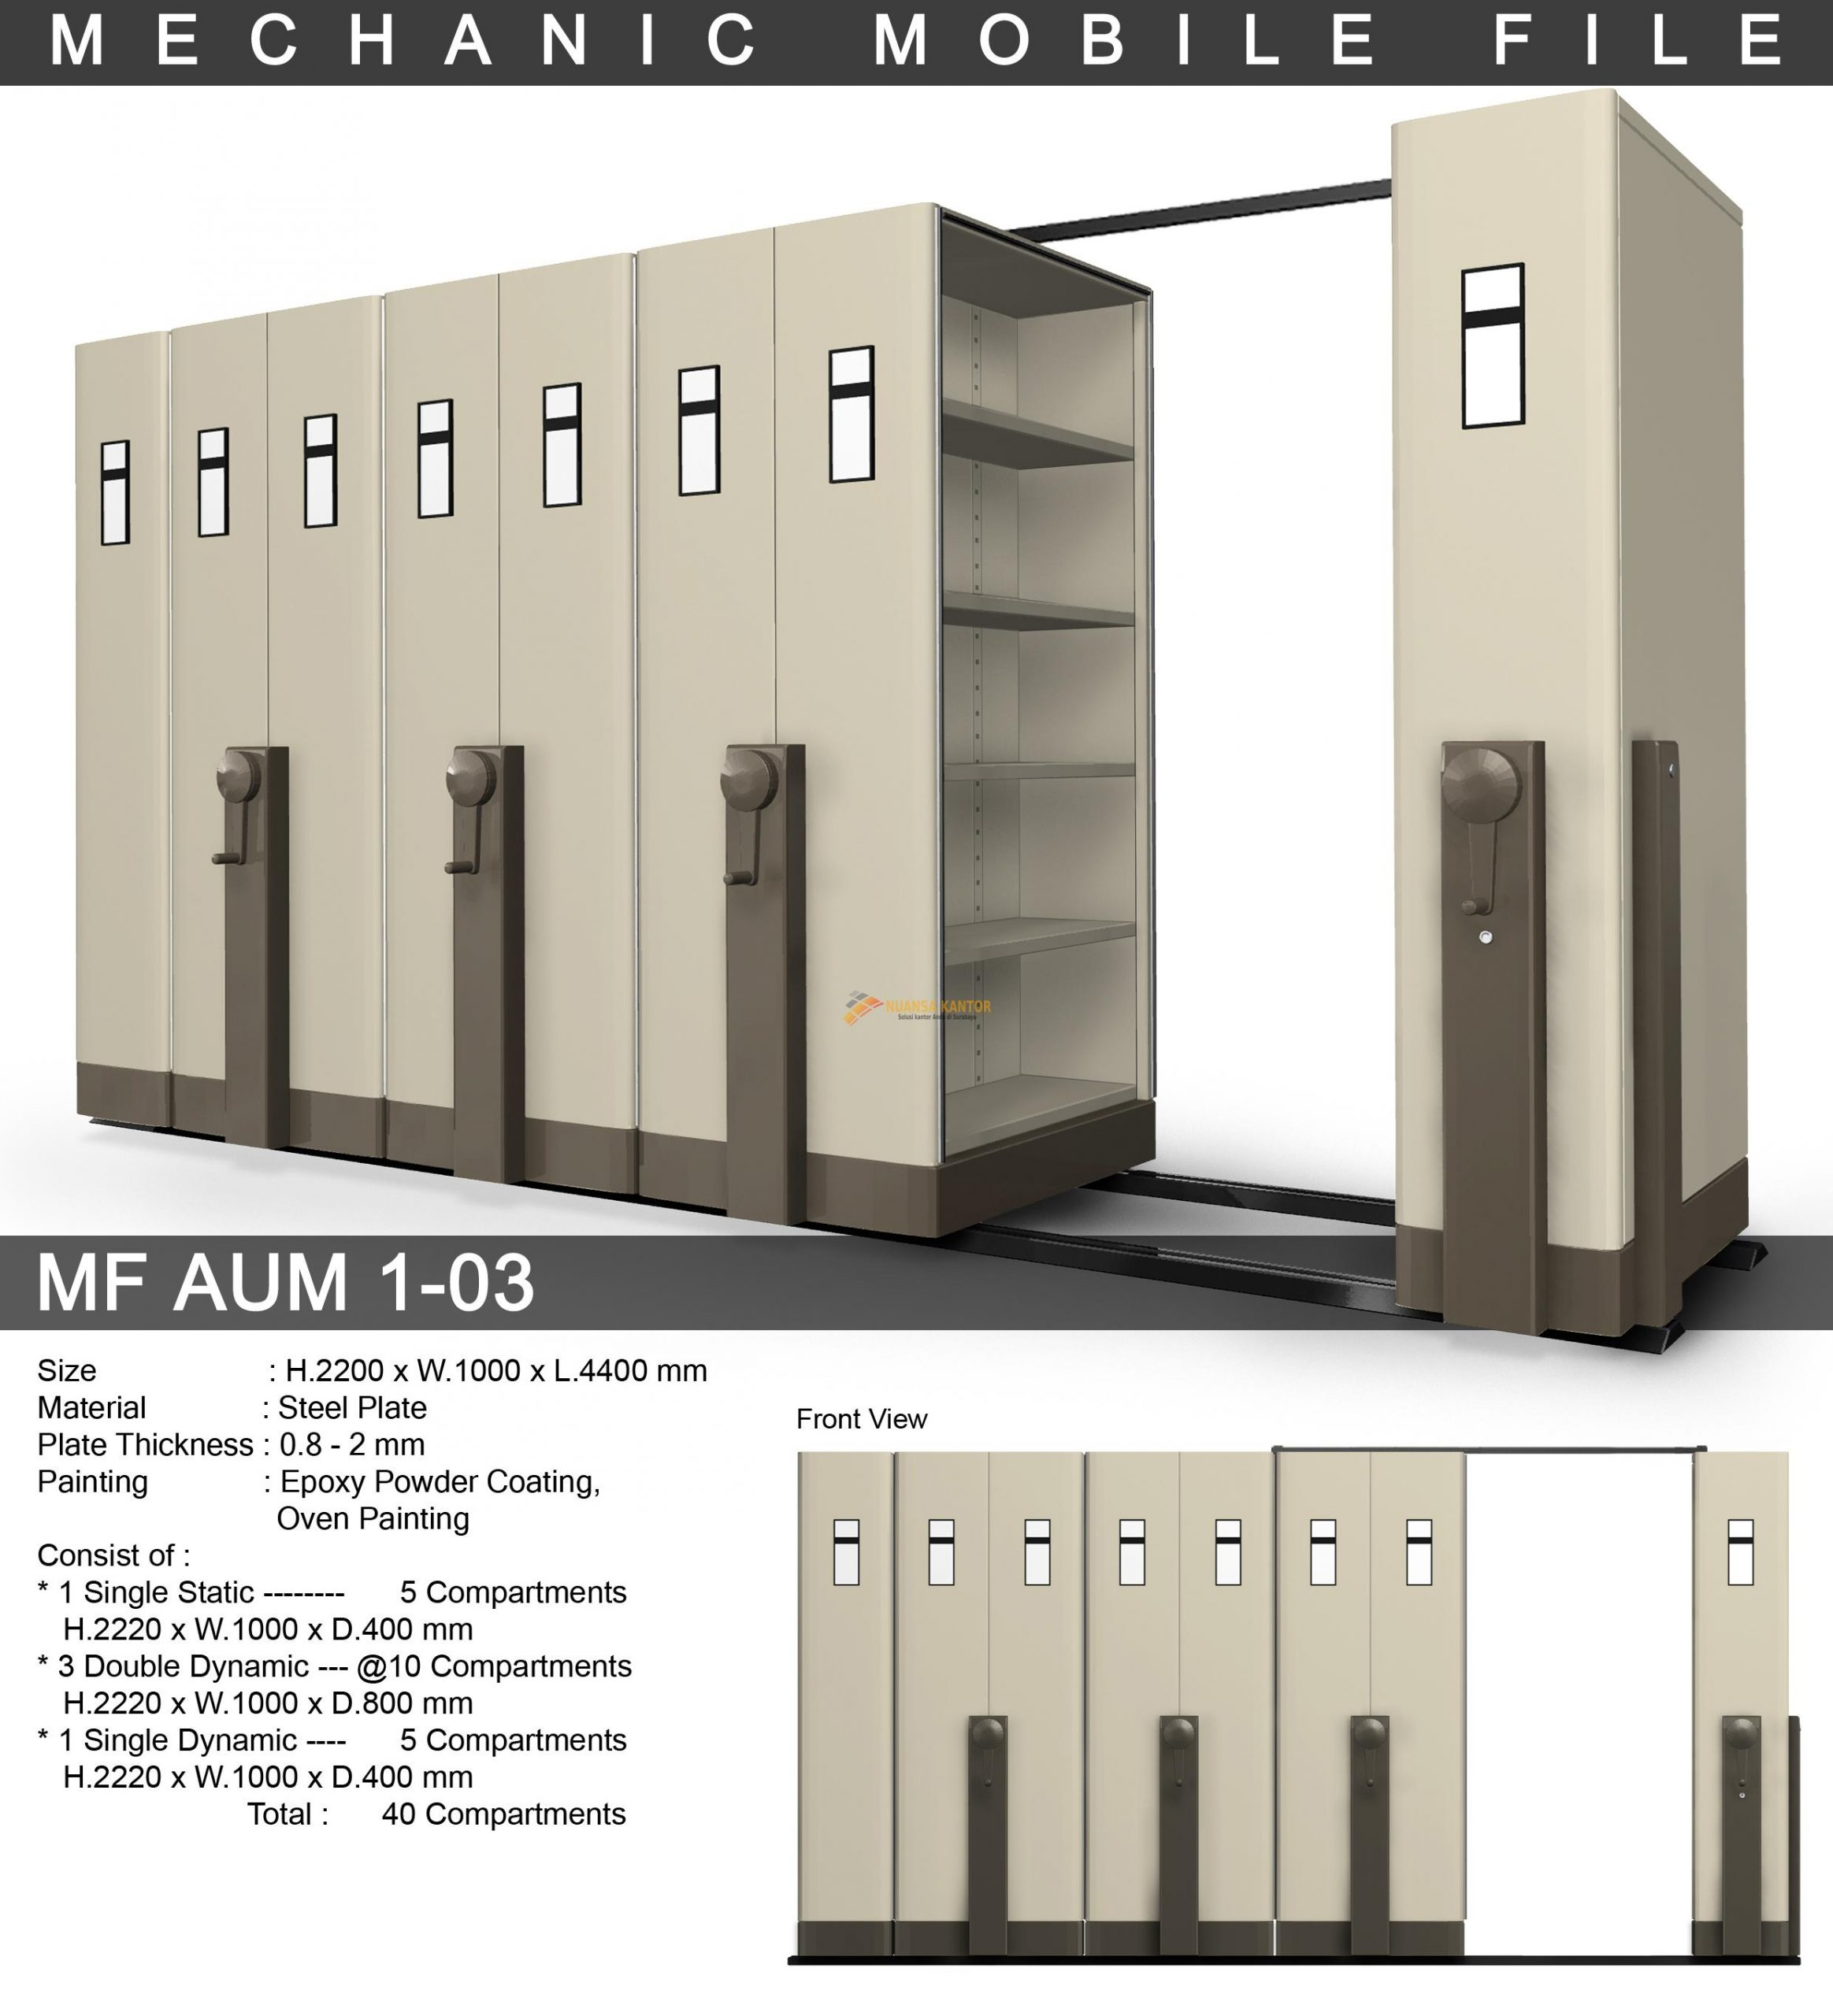 Mobile File Alba Mekanik MF AUM 1-03 ( 40 Compartments )